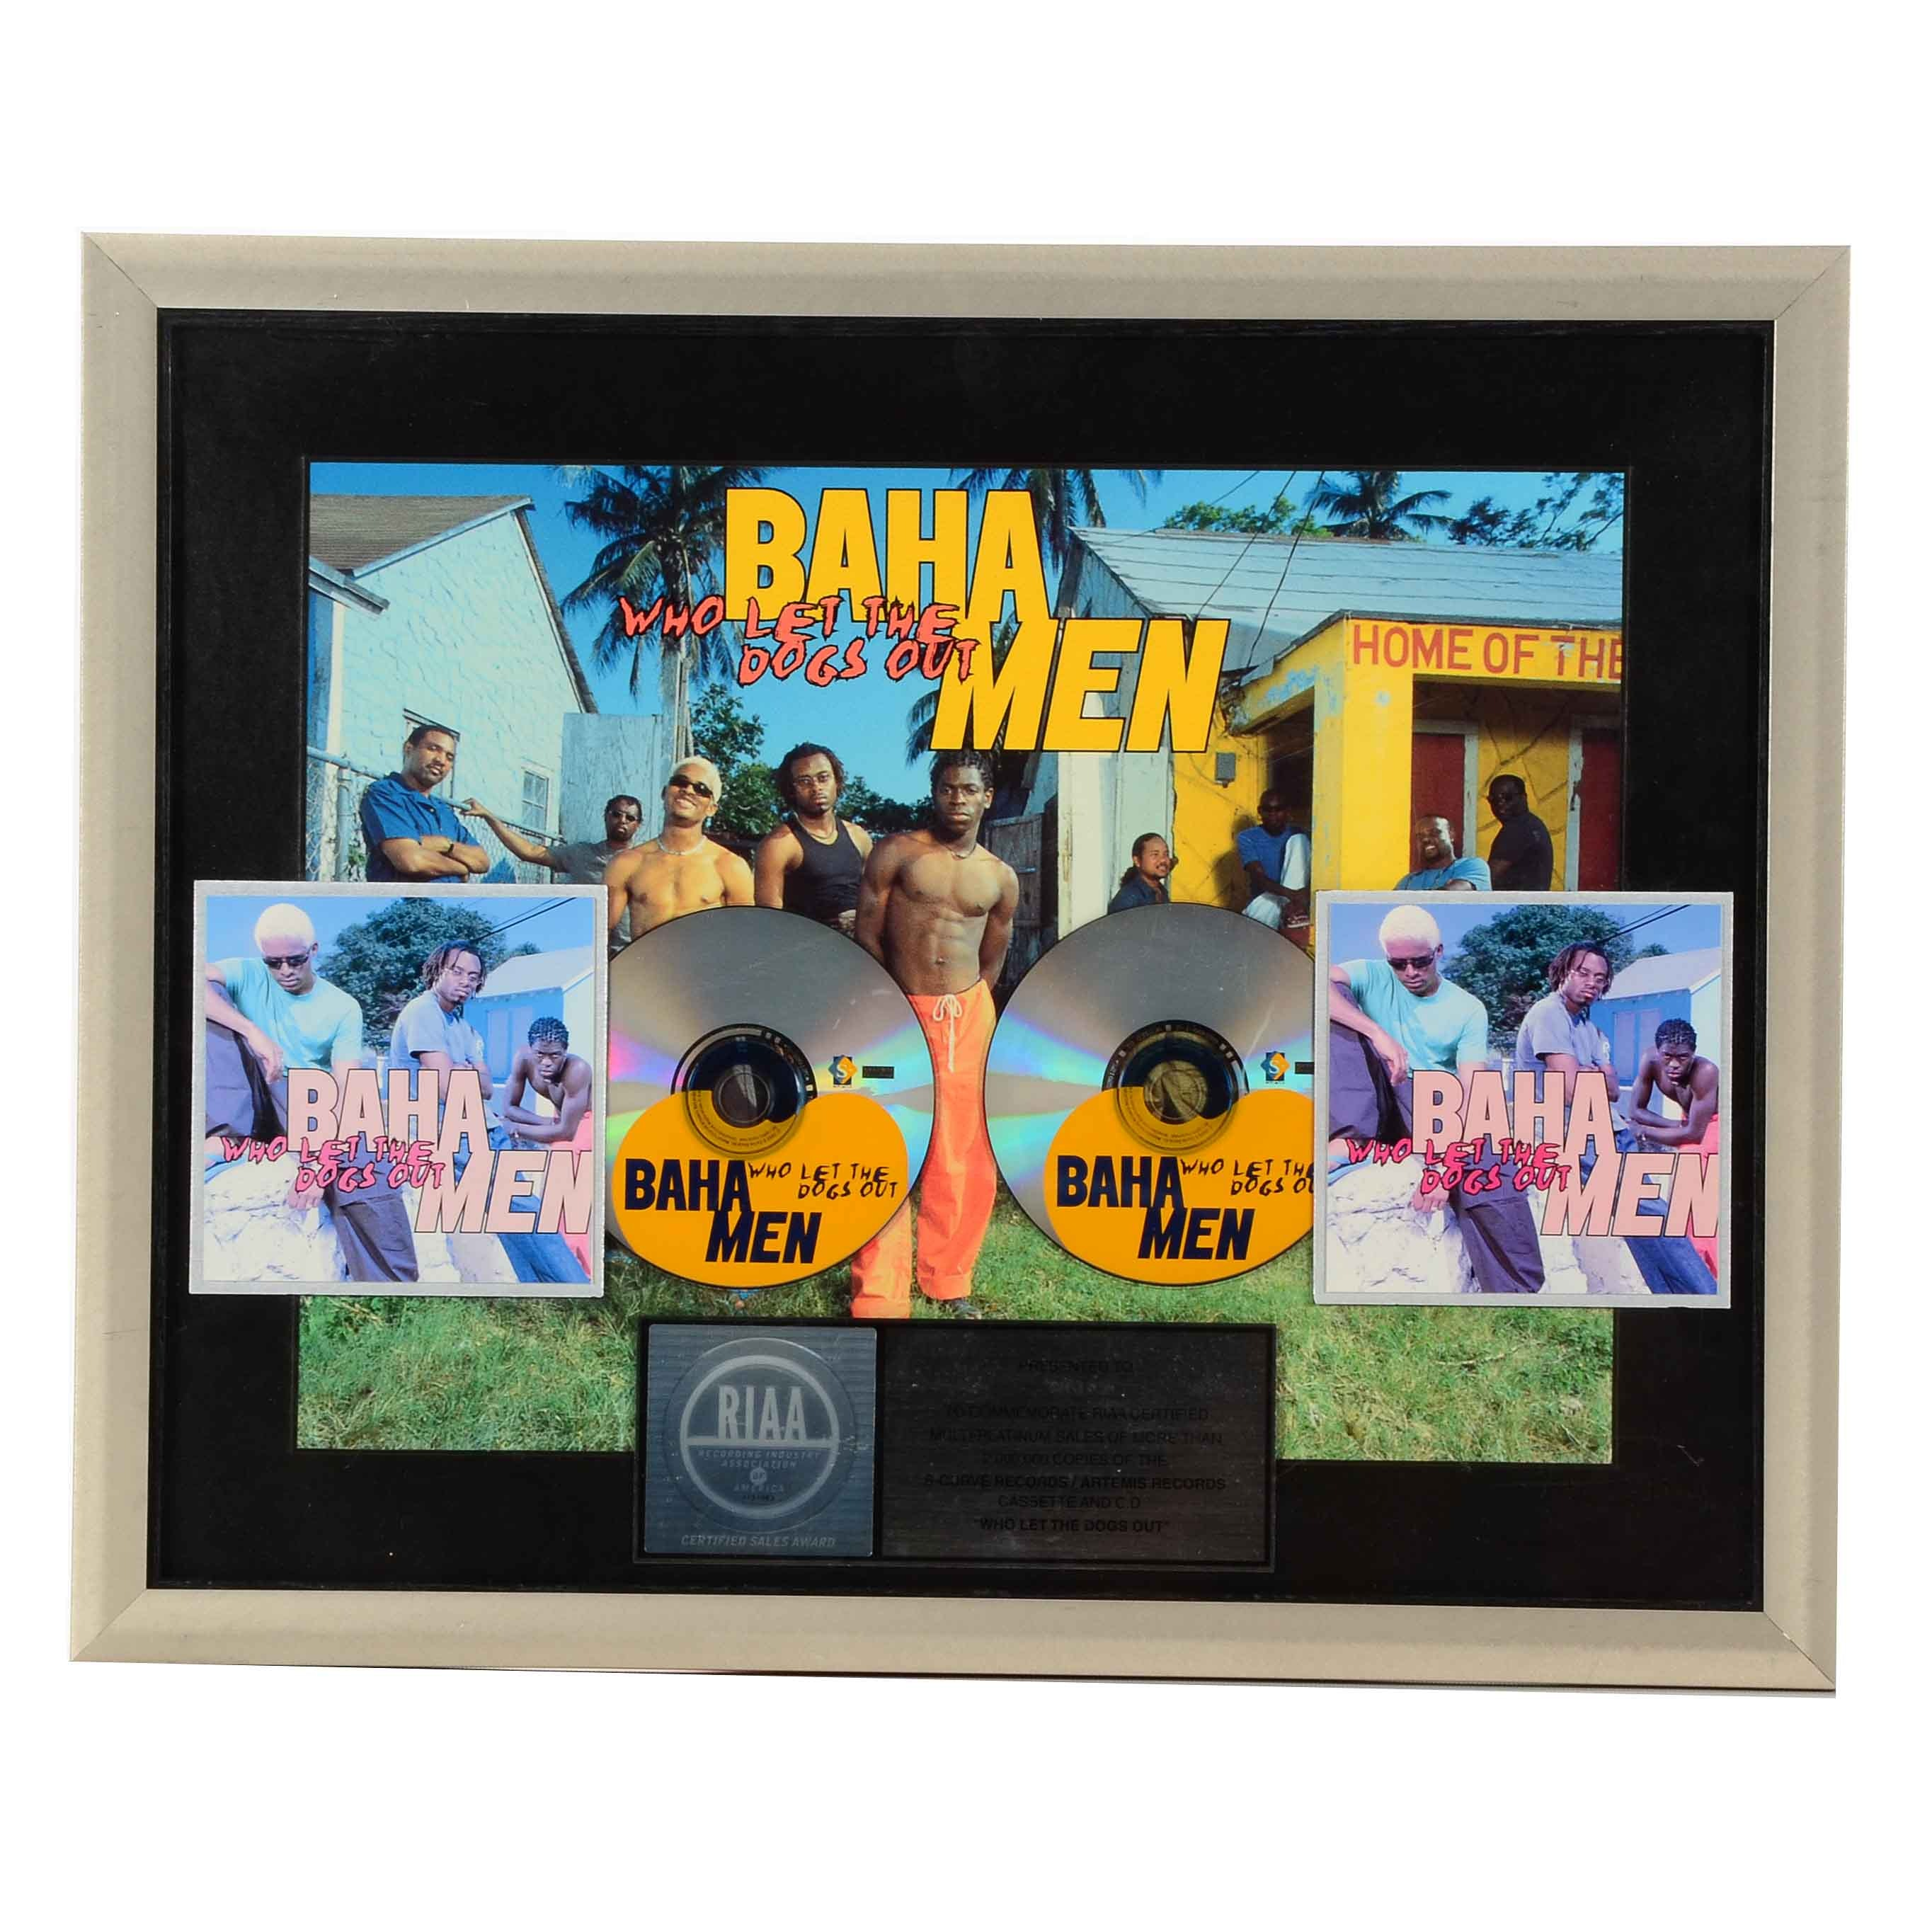 Baha Men Q102 Award Display